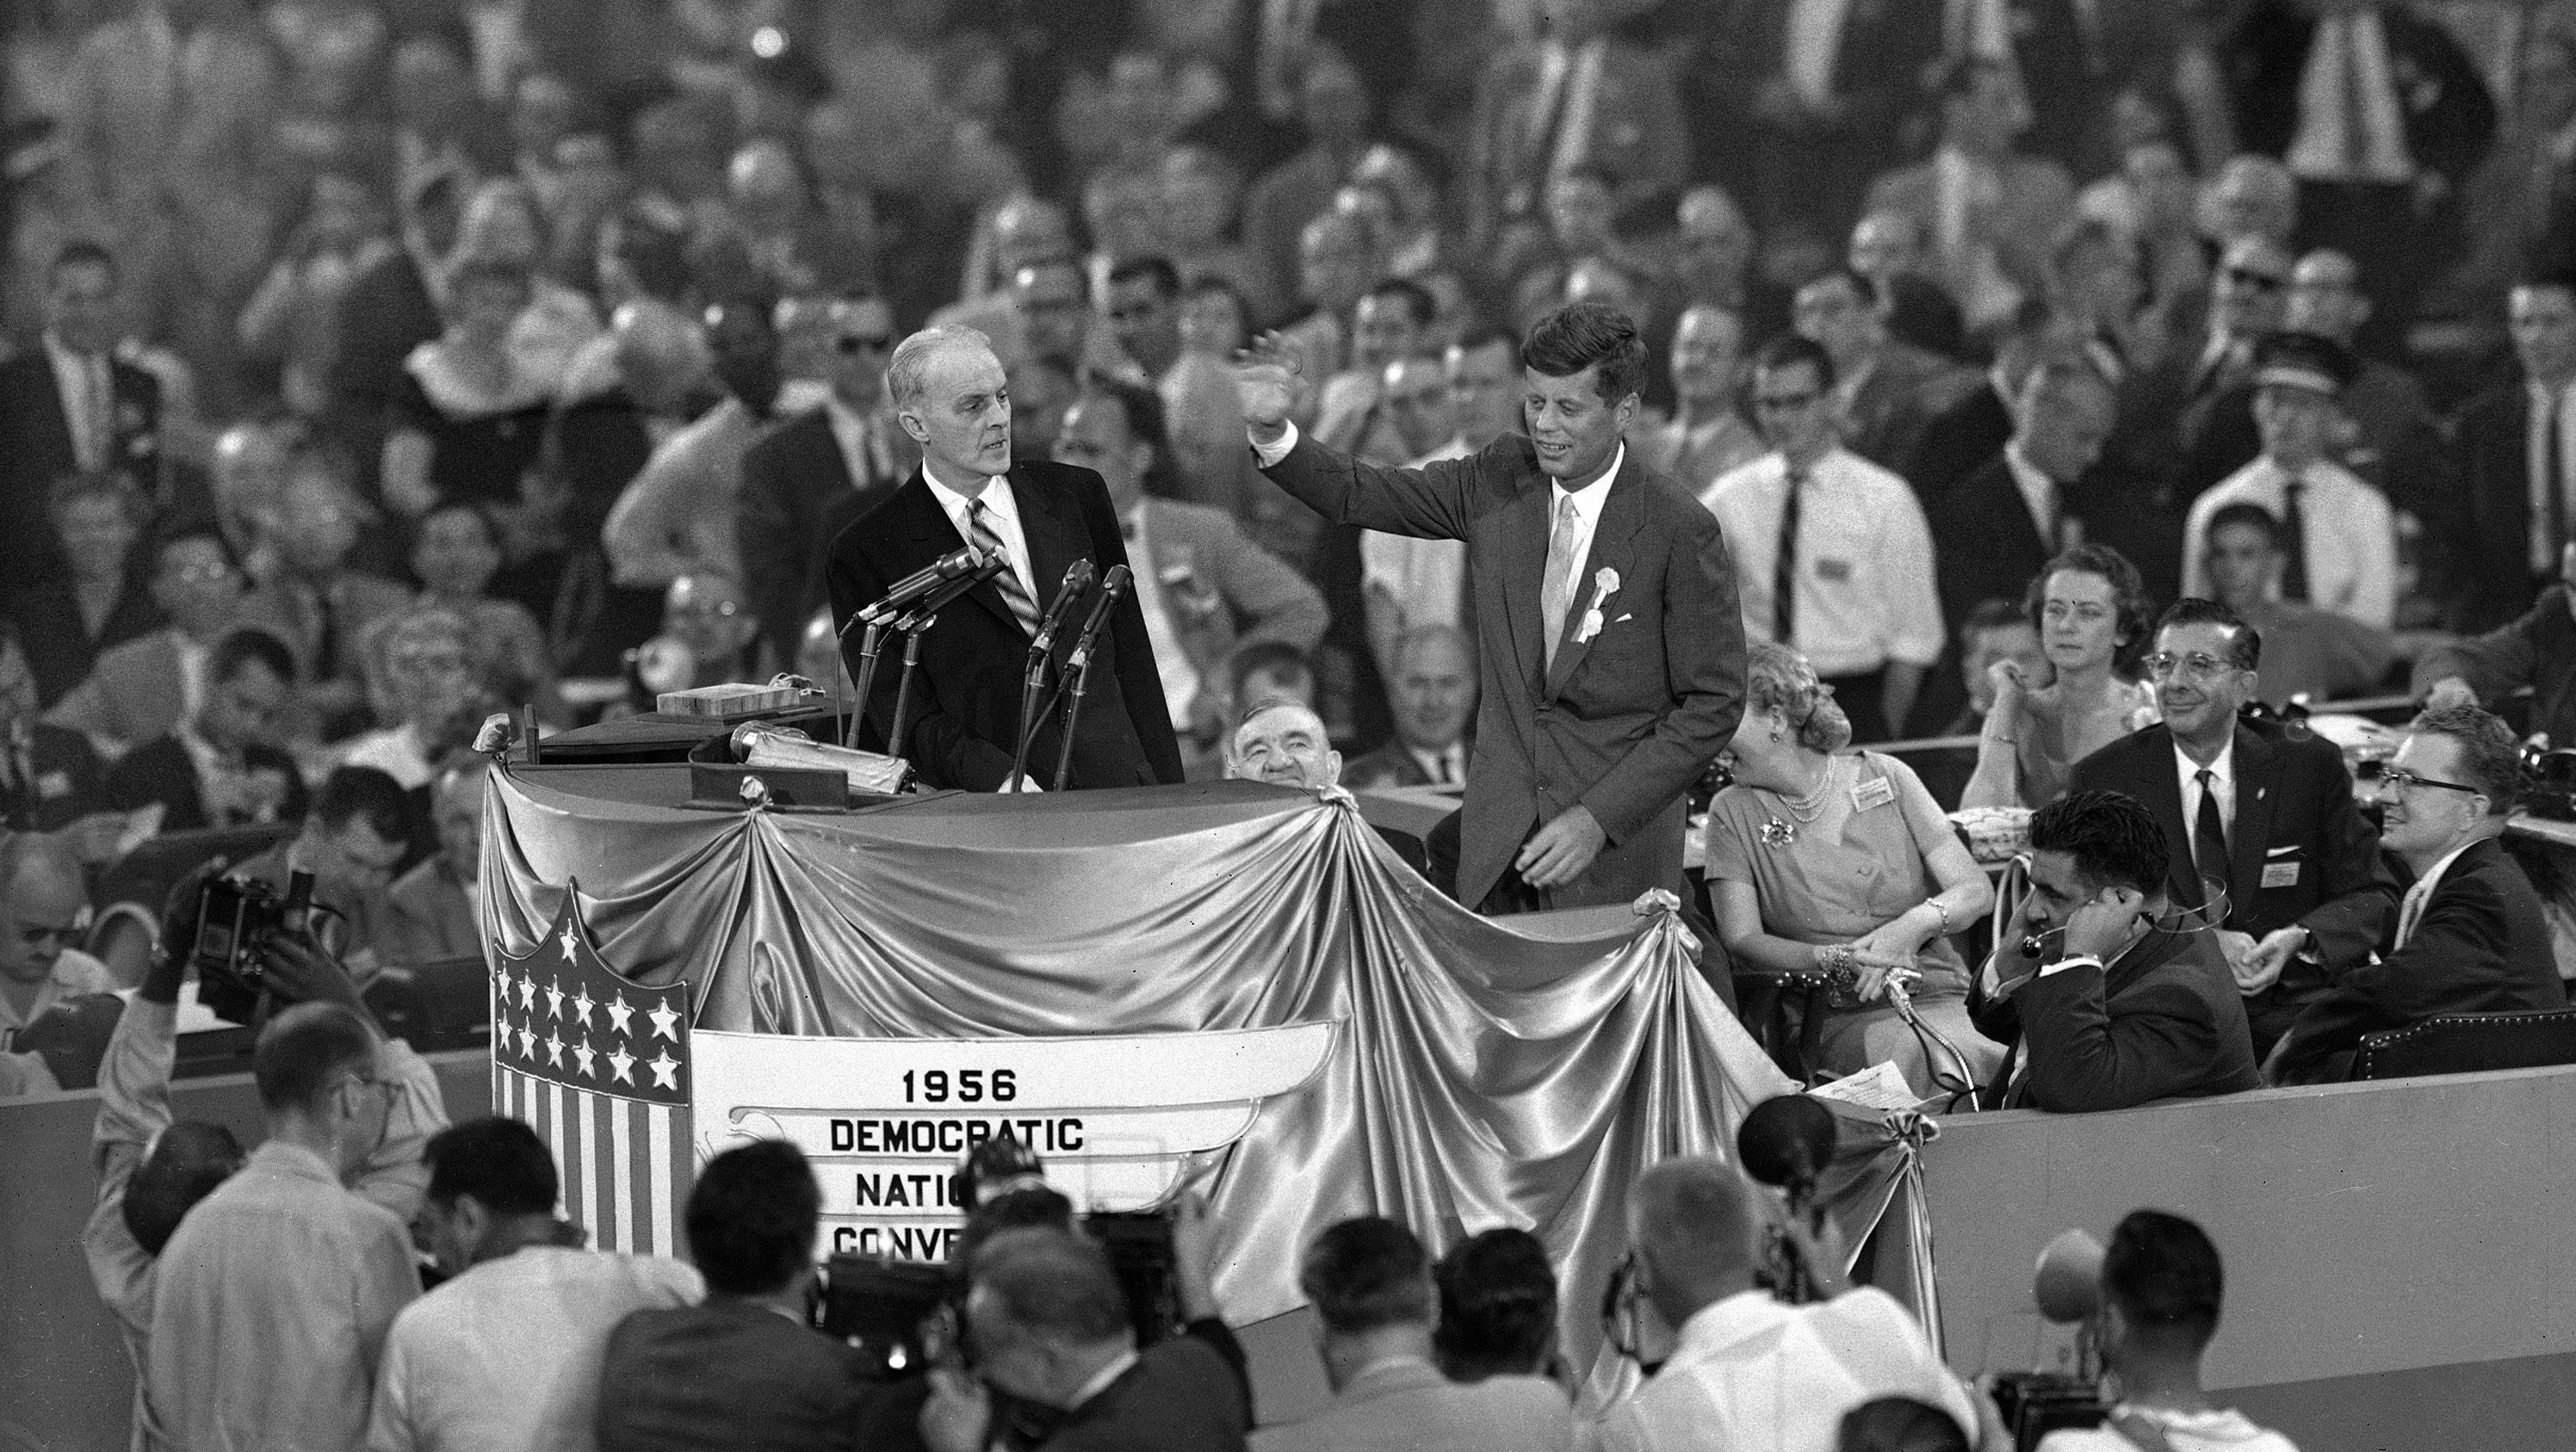 Then Sen. John F. Kennedy of Massachusetts appears at the Democratic National Convention in Chicago in 1956. (AP Photo)